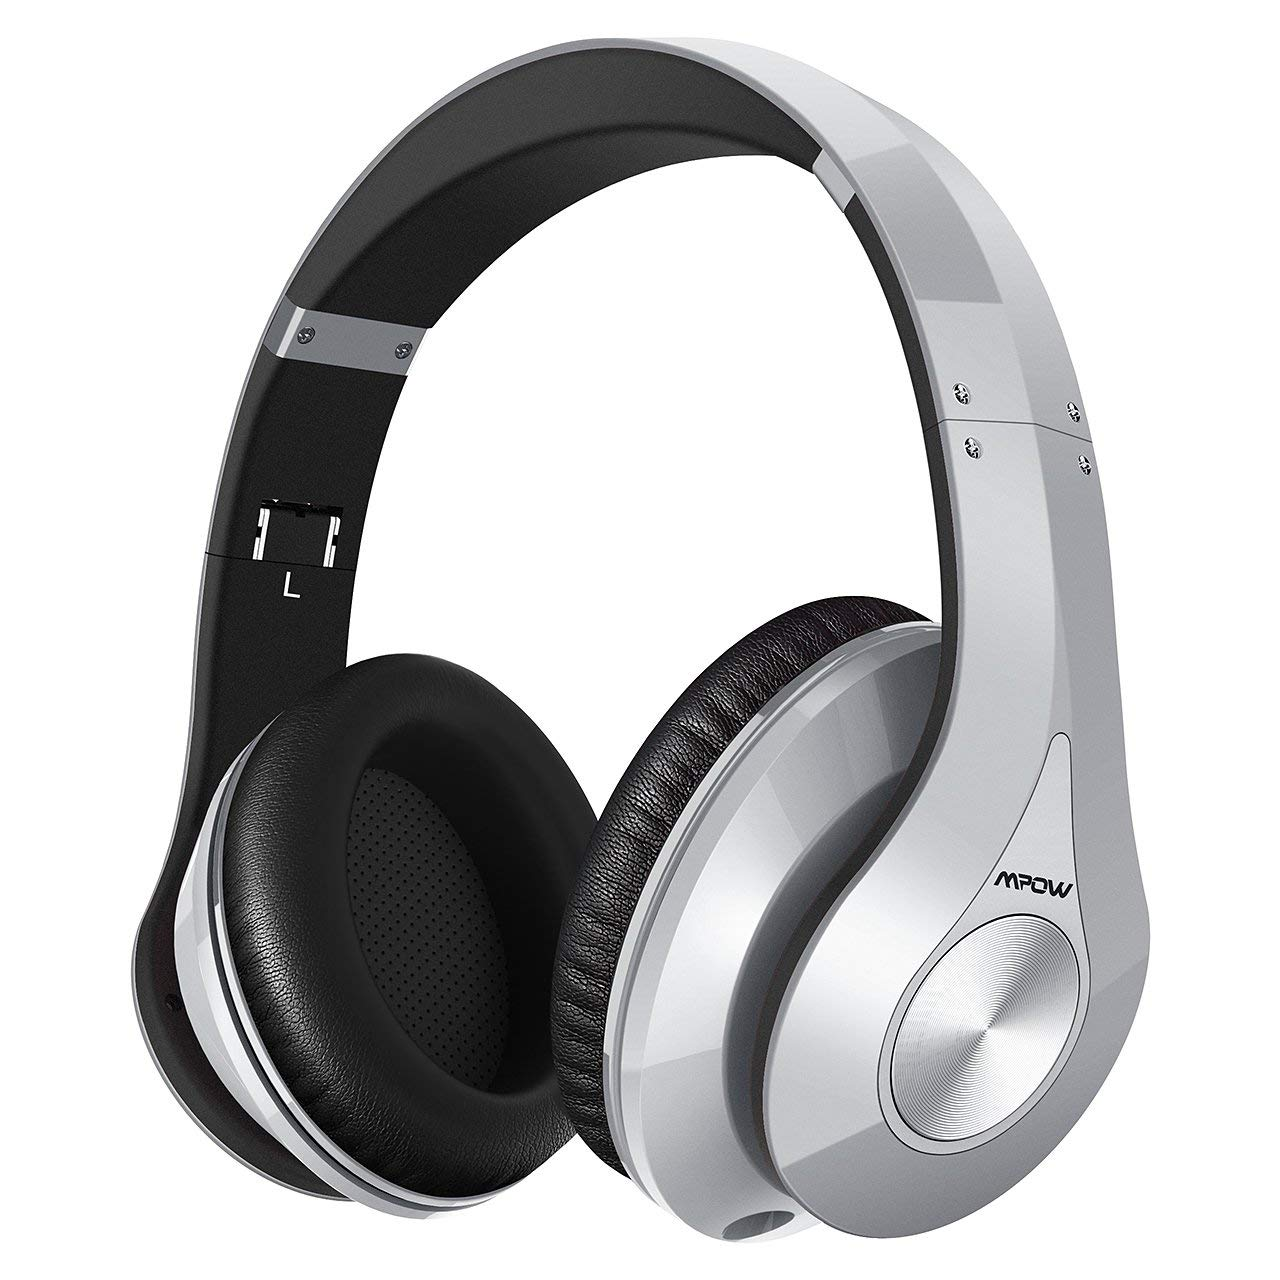 506ac2df33406c Mpow 059 Bluetooth Headphones Over Ear, 20h Playing, Hi-Fi Stereo Wireless  Headset, Foldable, Soft Memory-Protein Earmuffs, Built-in Mic and Wired  Mode for ...